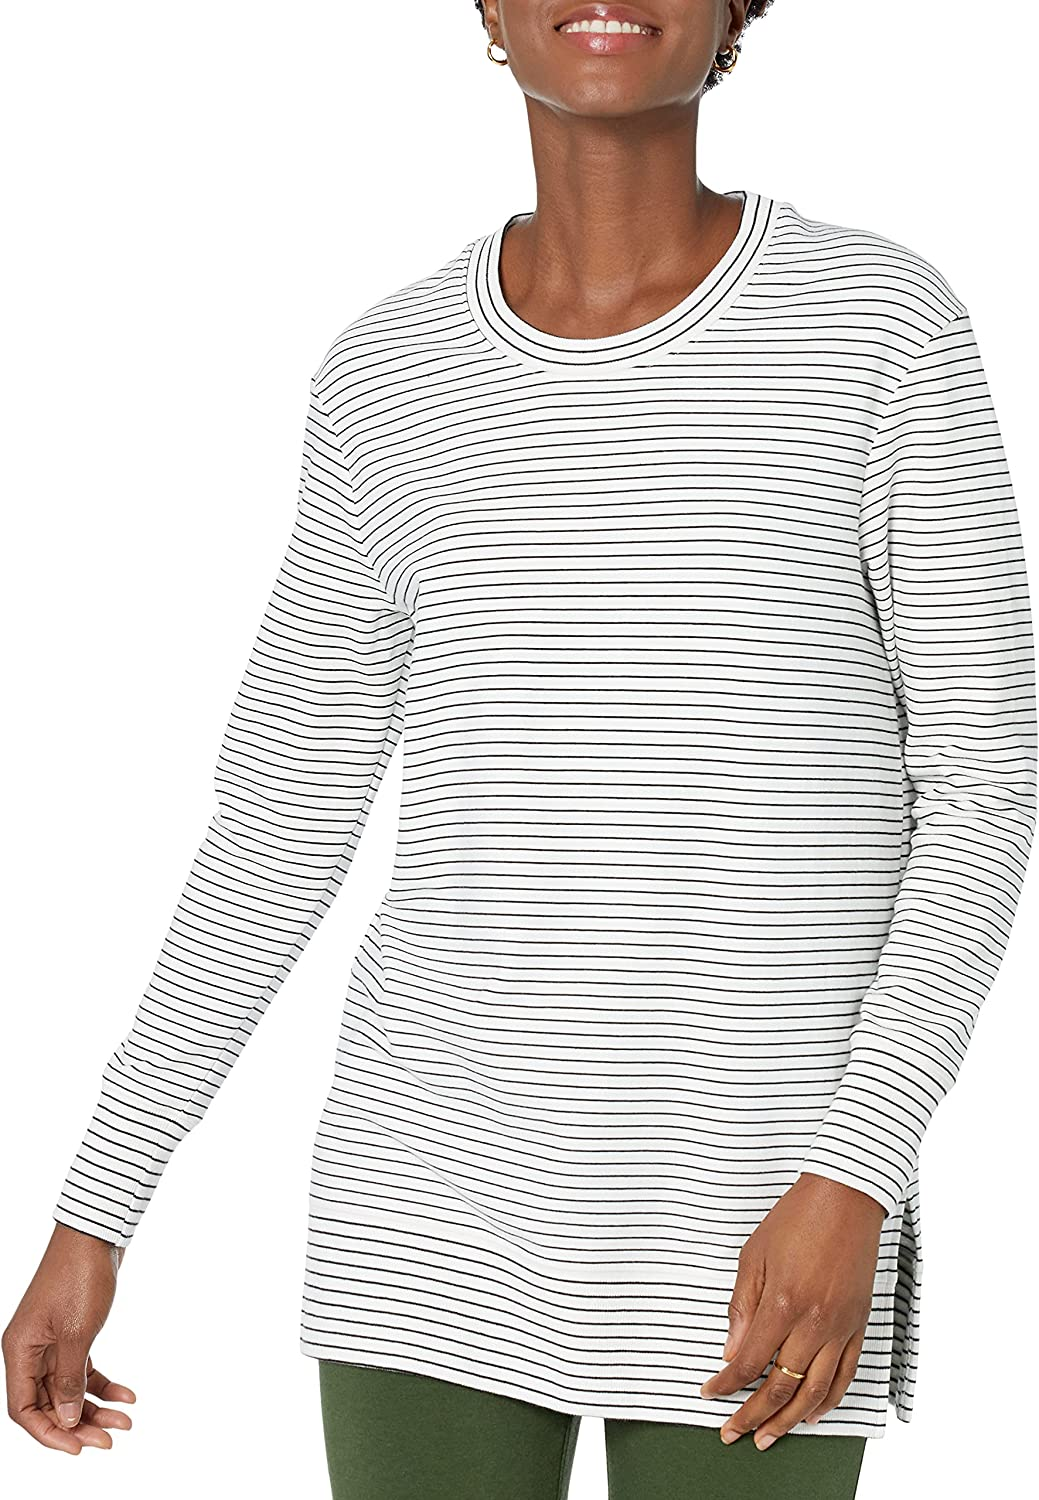 Amazon Brand - Daily Ritual Women's Relaxed Fit Terry Cotton and Modal Side-Vent Tunic